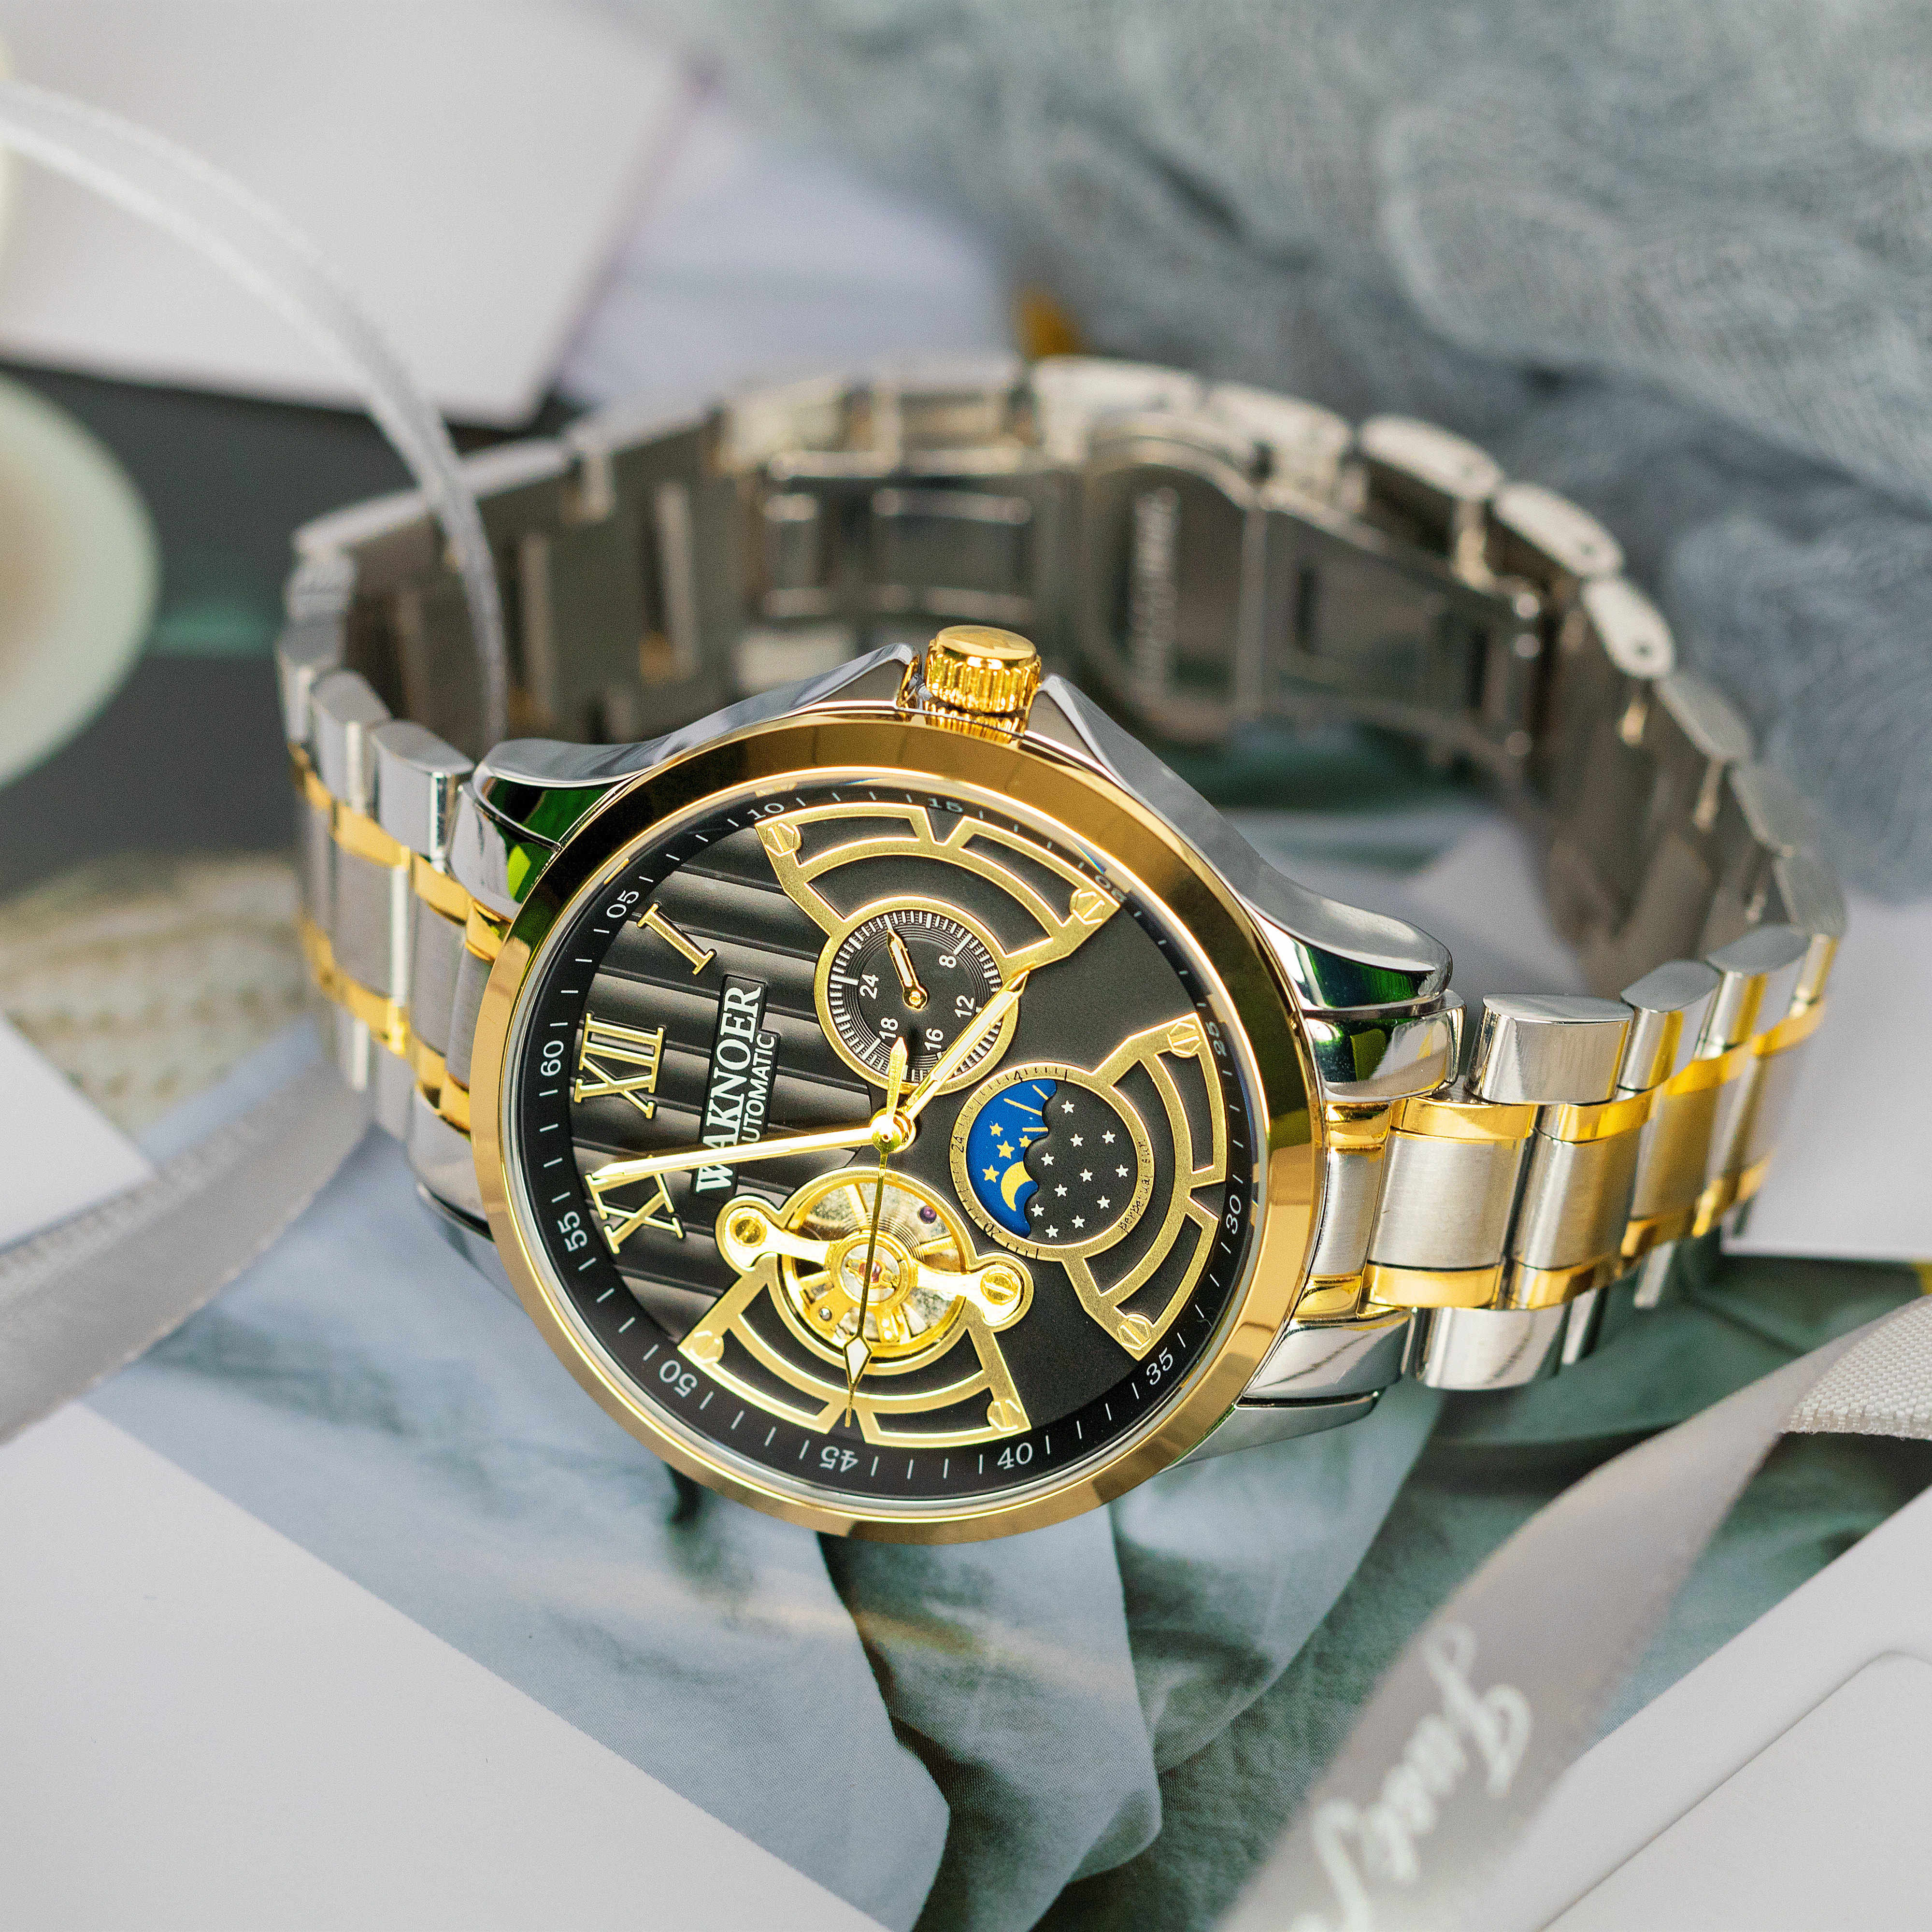 Hcee486c3243643b08196530c52859f47A WAKNOER Automatic Mechanical Watch Men Stainless Waterproof Moon Phase Luminous Luxury Gold  Business Tourbillon Montre Homme